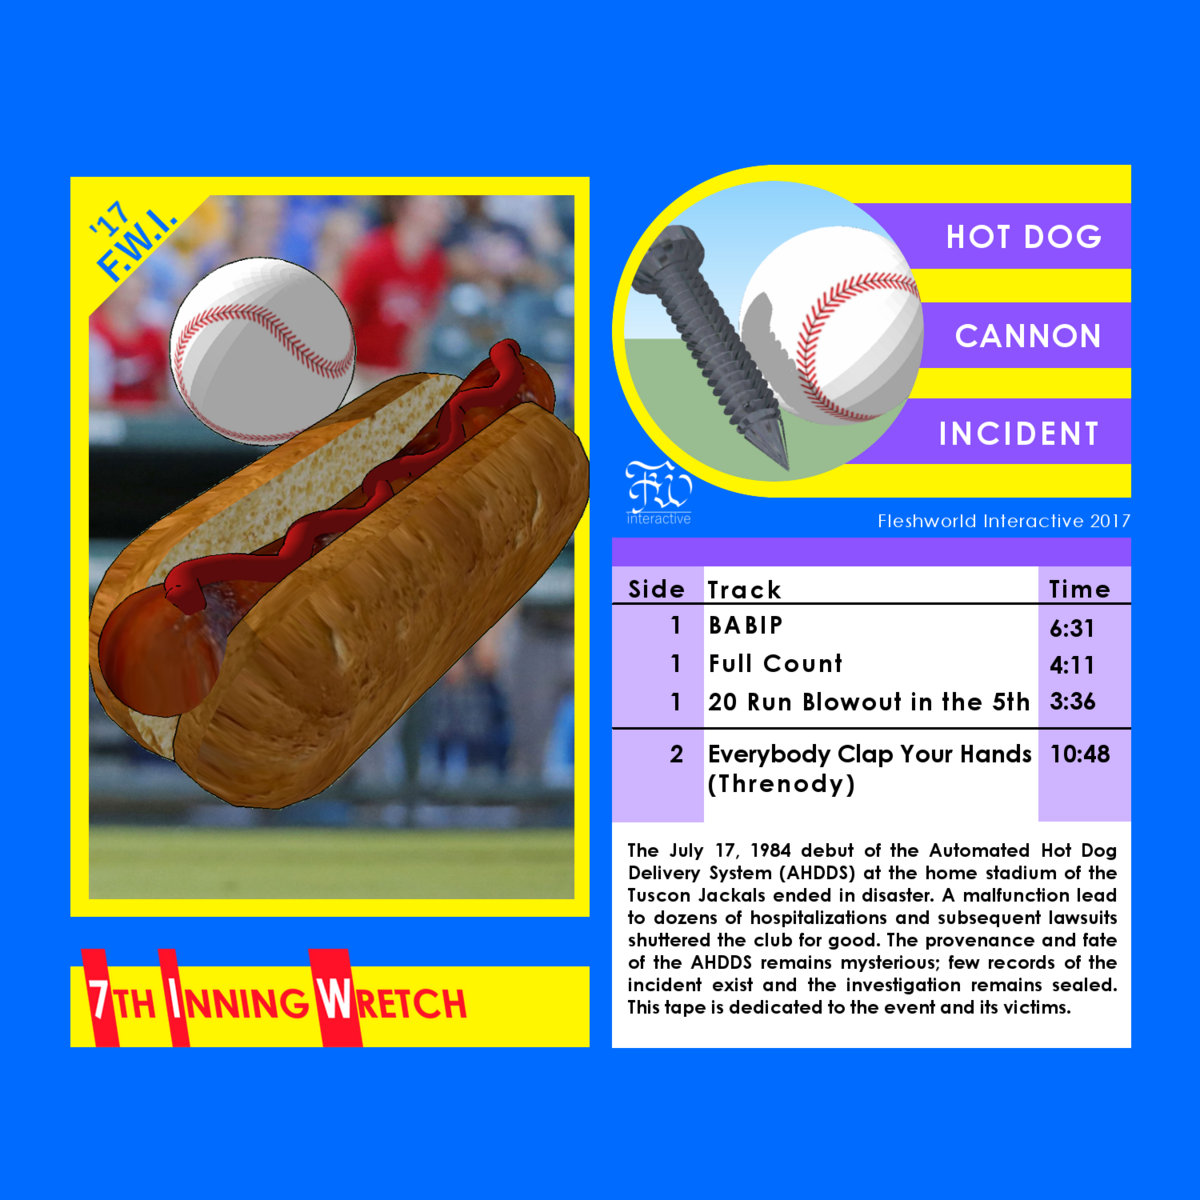 hot dog cannon